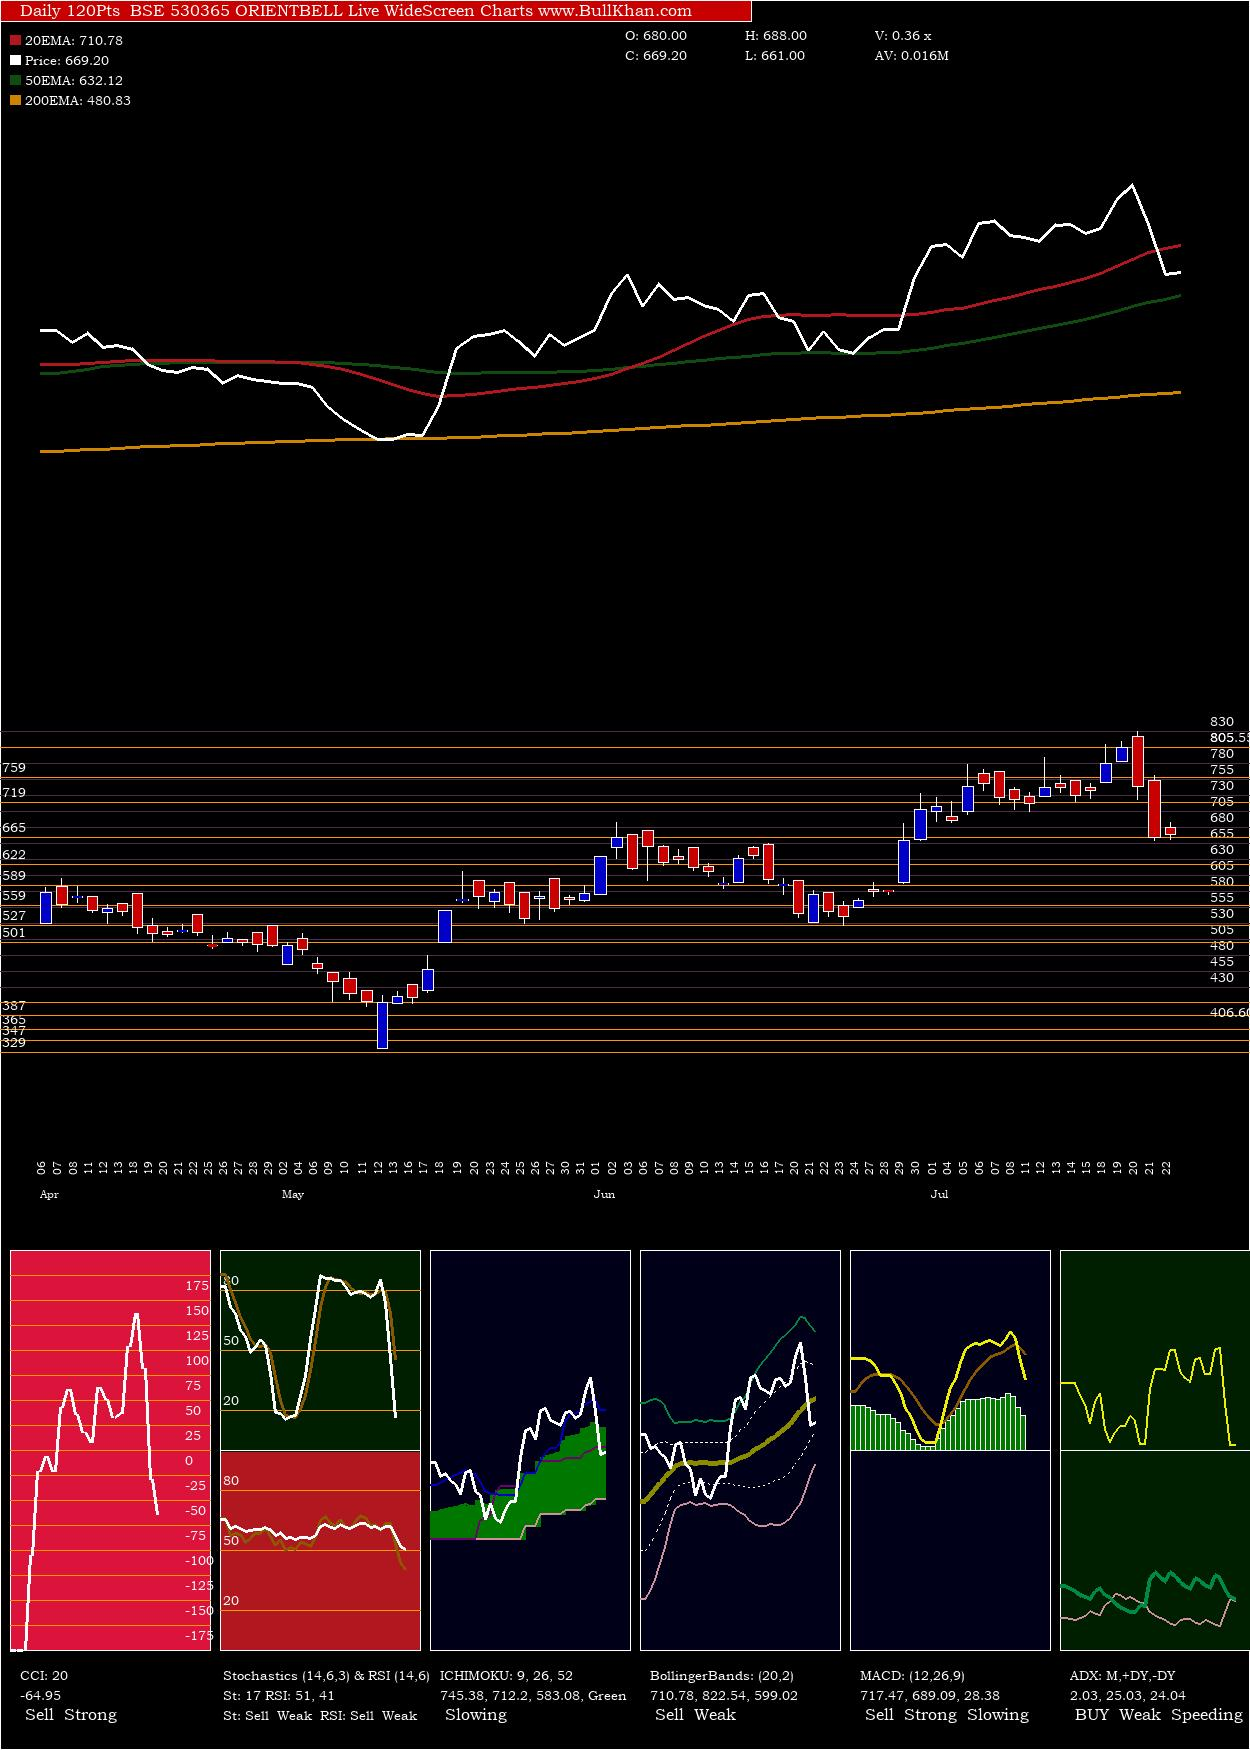 Orientbell charts and indicators